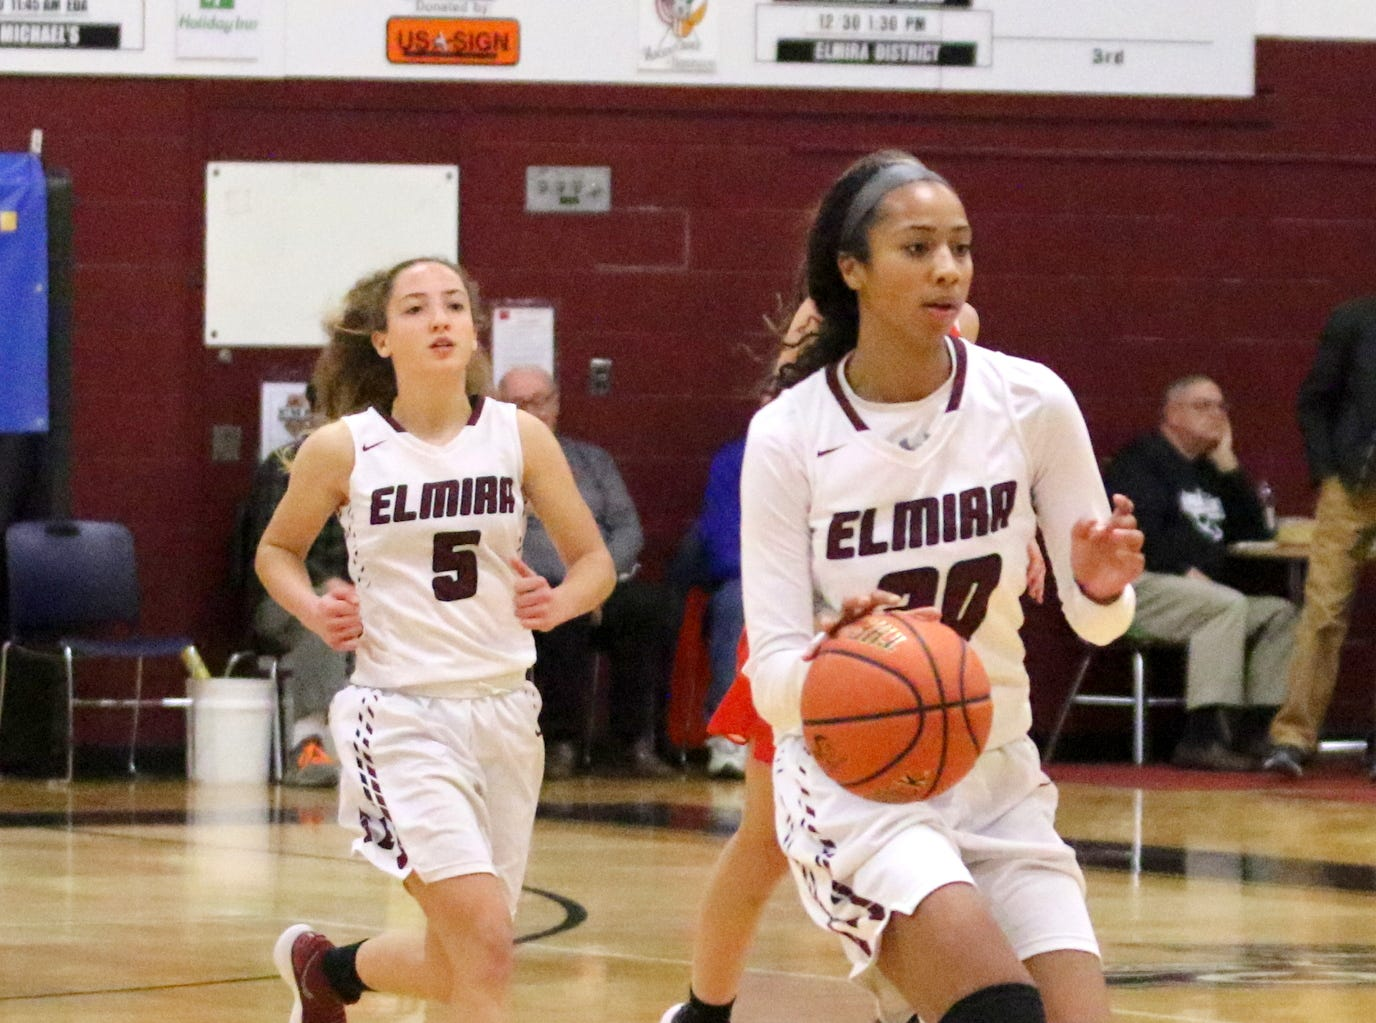 Elmira was an 80-58 winner over North Rockland in the girls third-place game at the Josh Palmer Fund Elmira Holiday Inn Classic on Dec. 30, 2018 at Elmira High School.